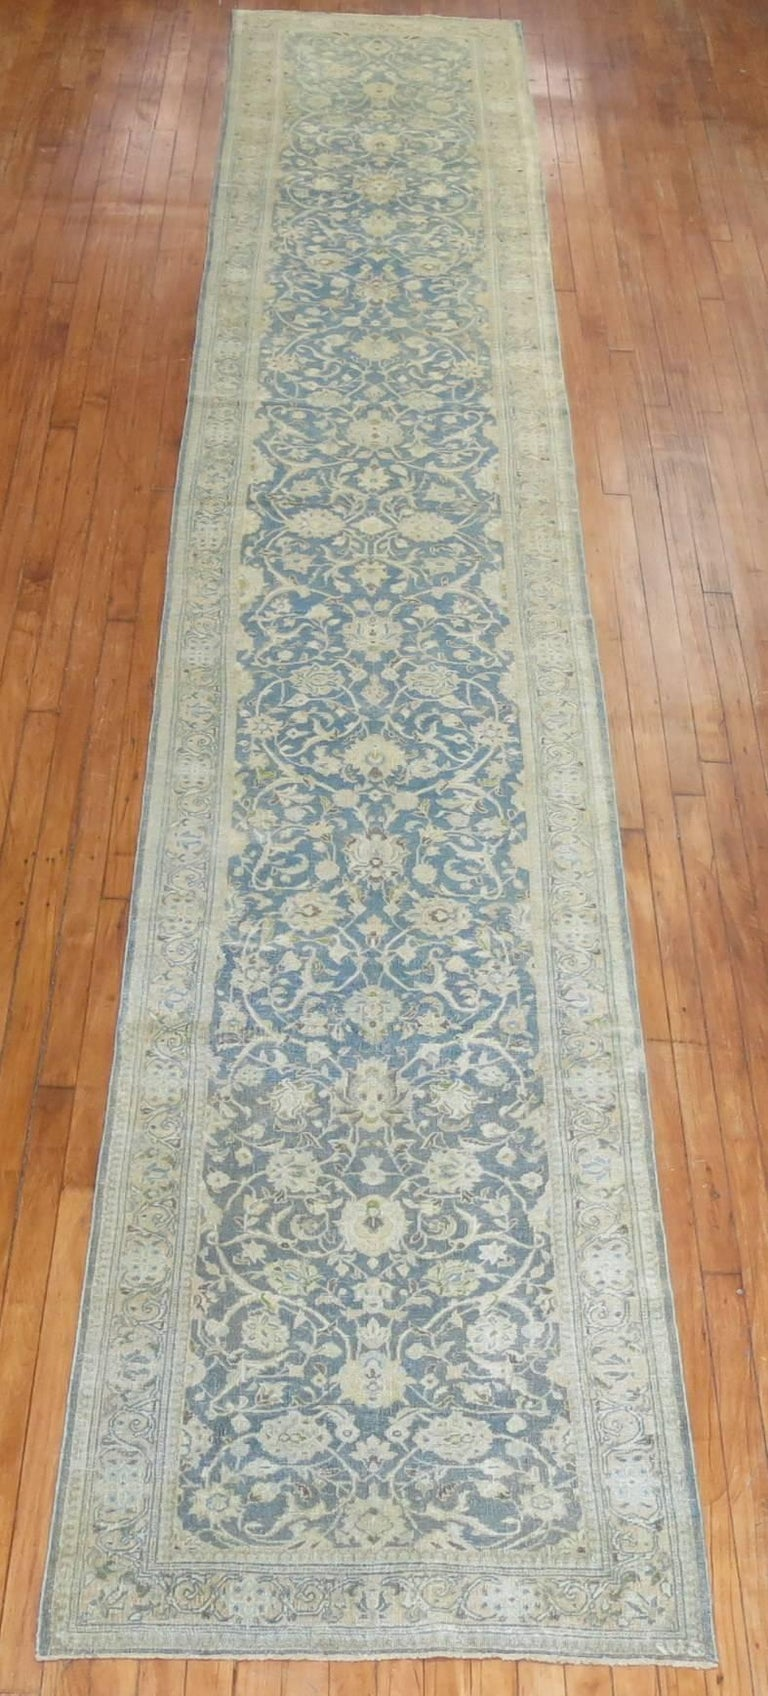 Mid-20th century Persian runner with a soft blue field and accents in sand.